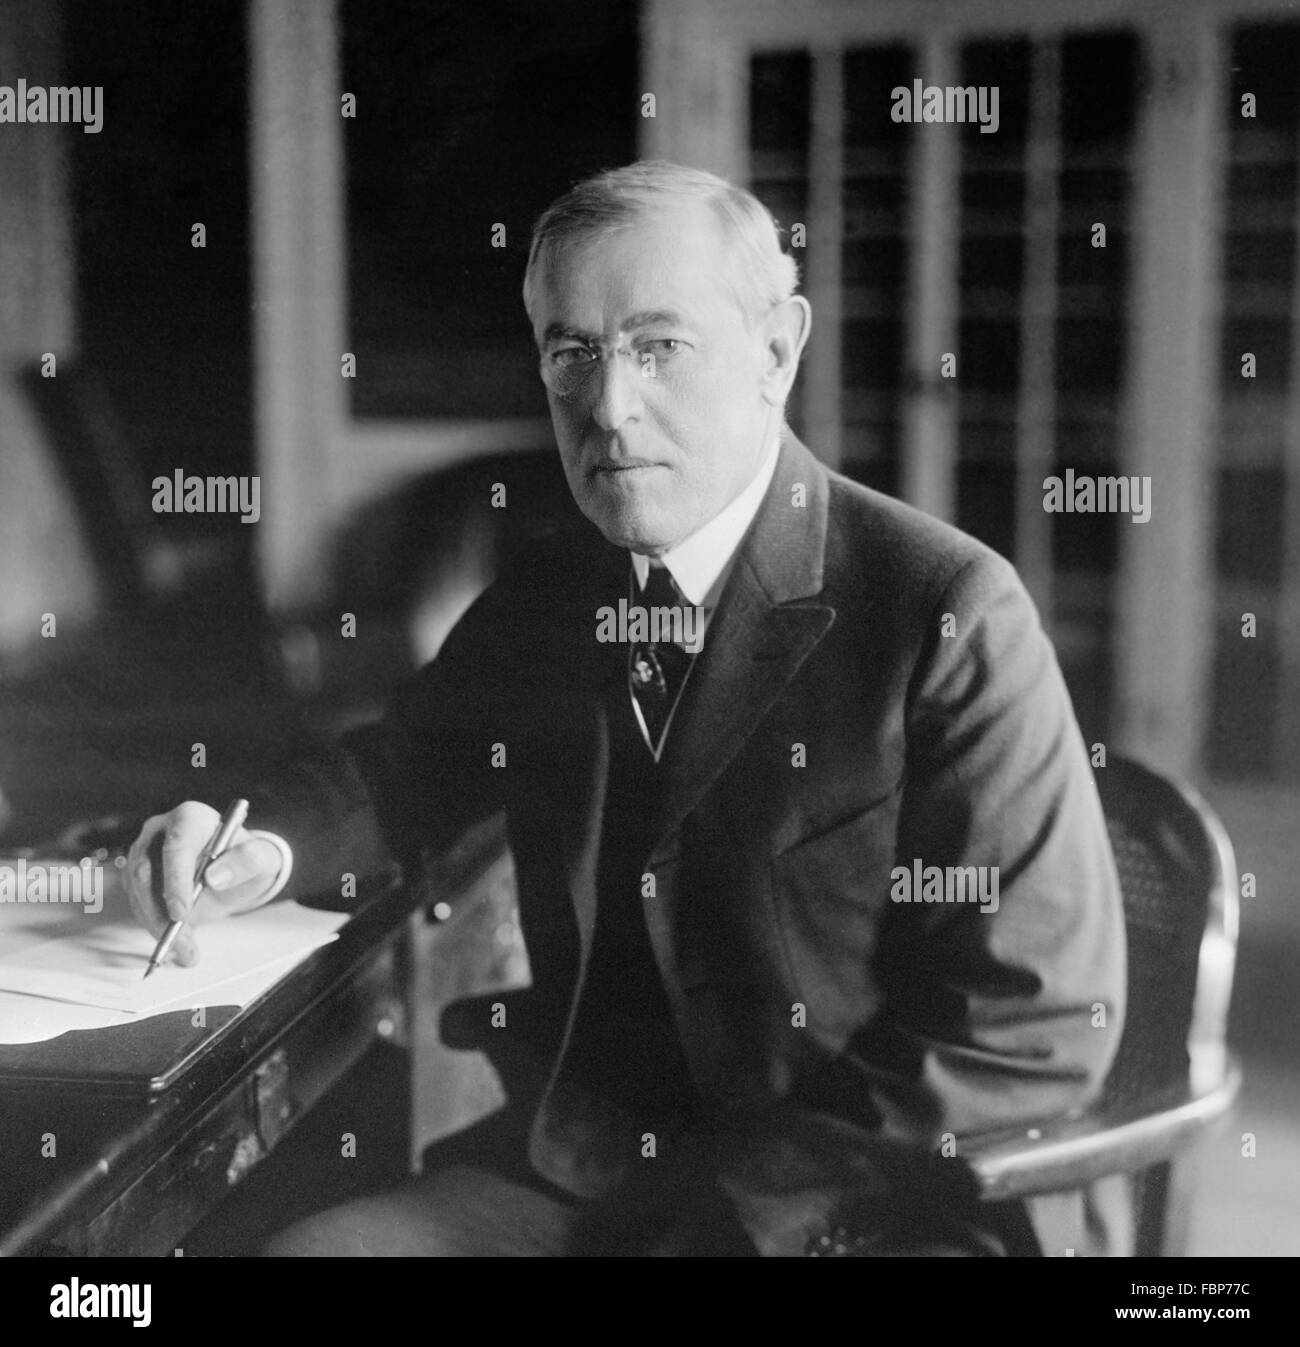 Woodrow Wilson, the 28th President of the USA, taken between 1913 and 1920 - Stock Image